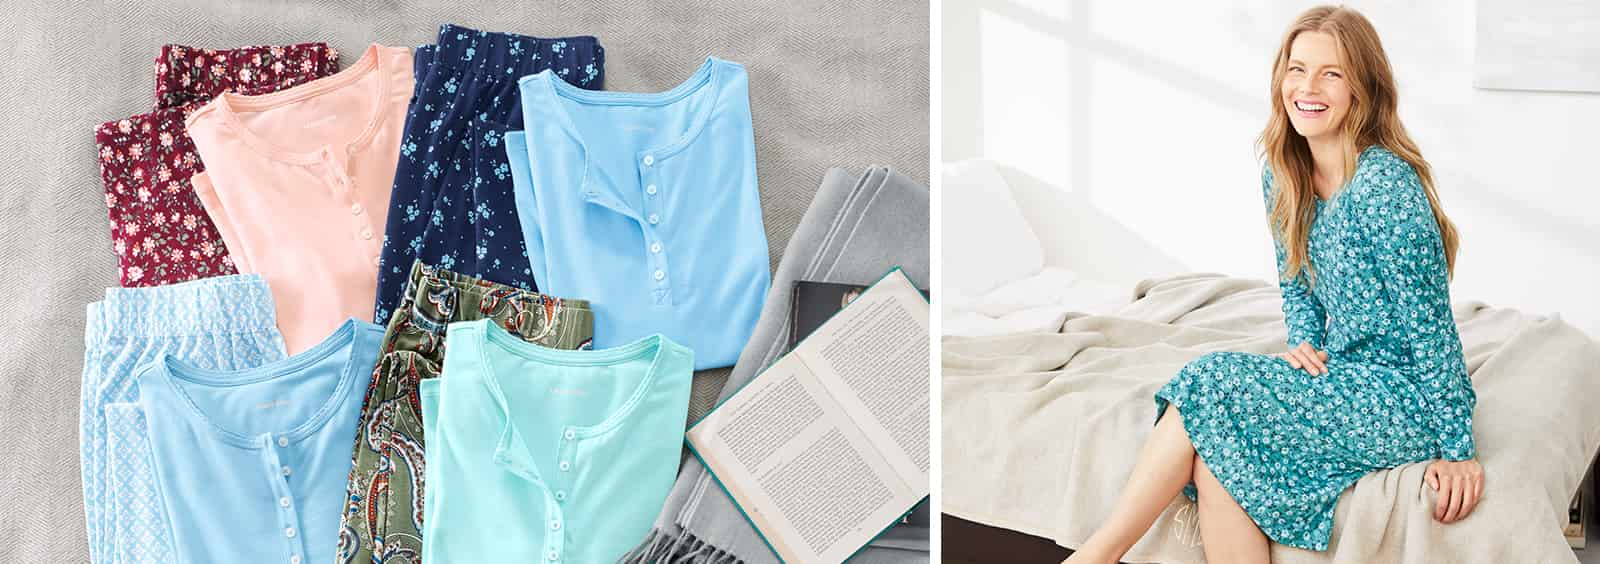 Pajama Gifts for Women in Your Life